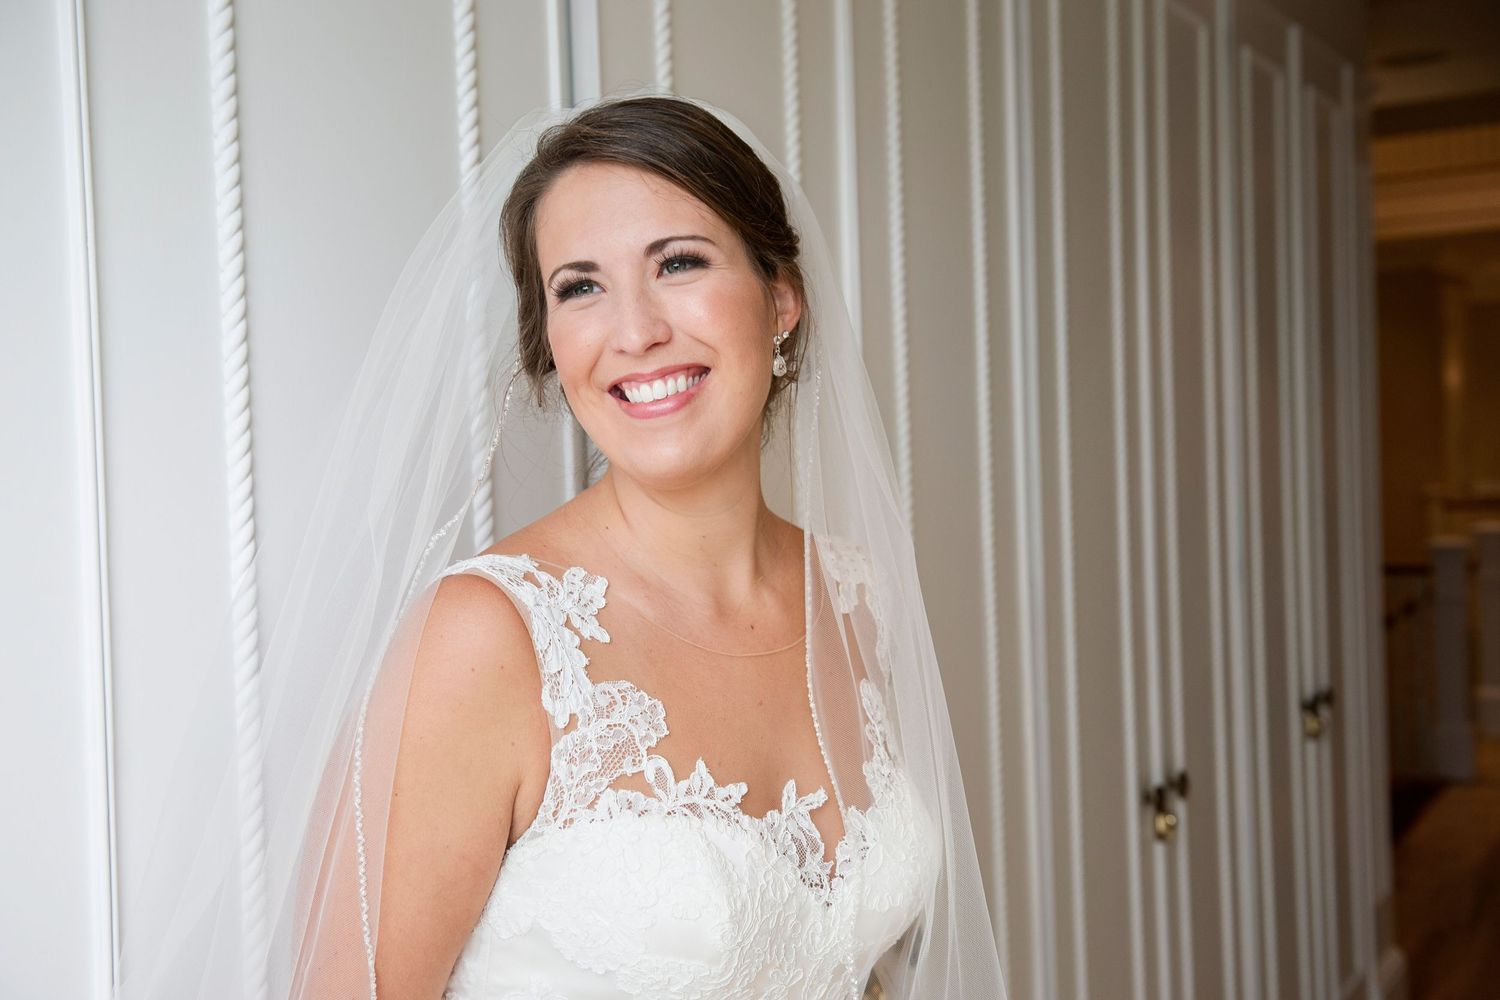 bride portrait smiling and looking off camera